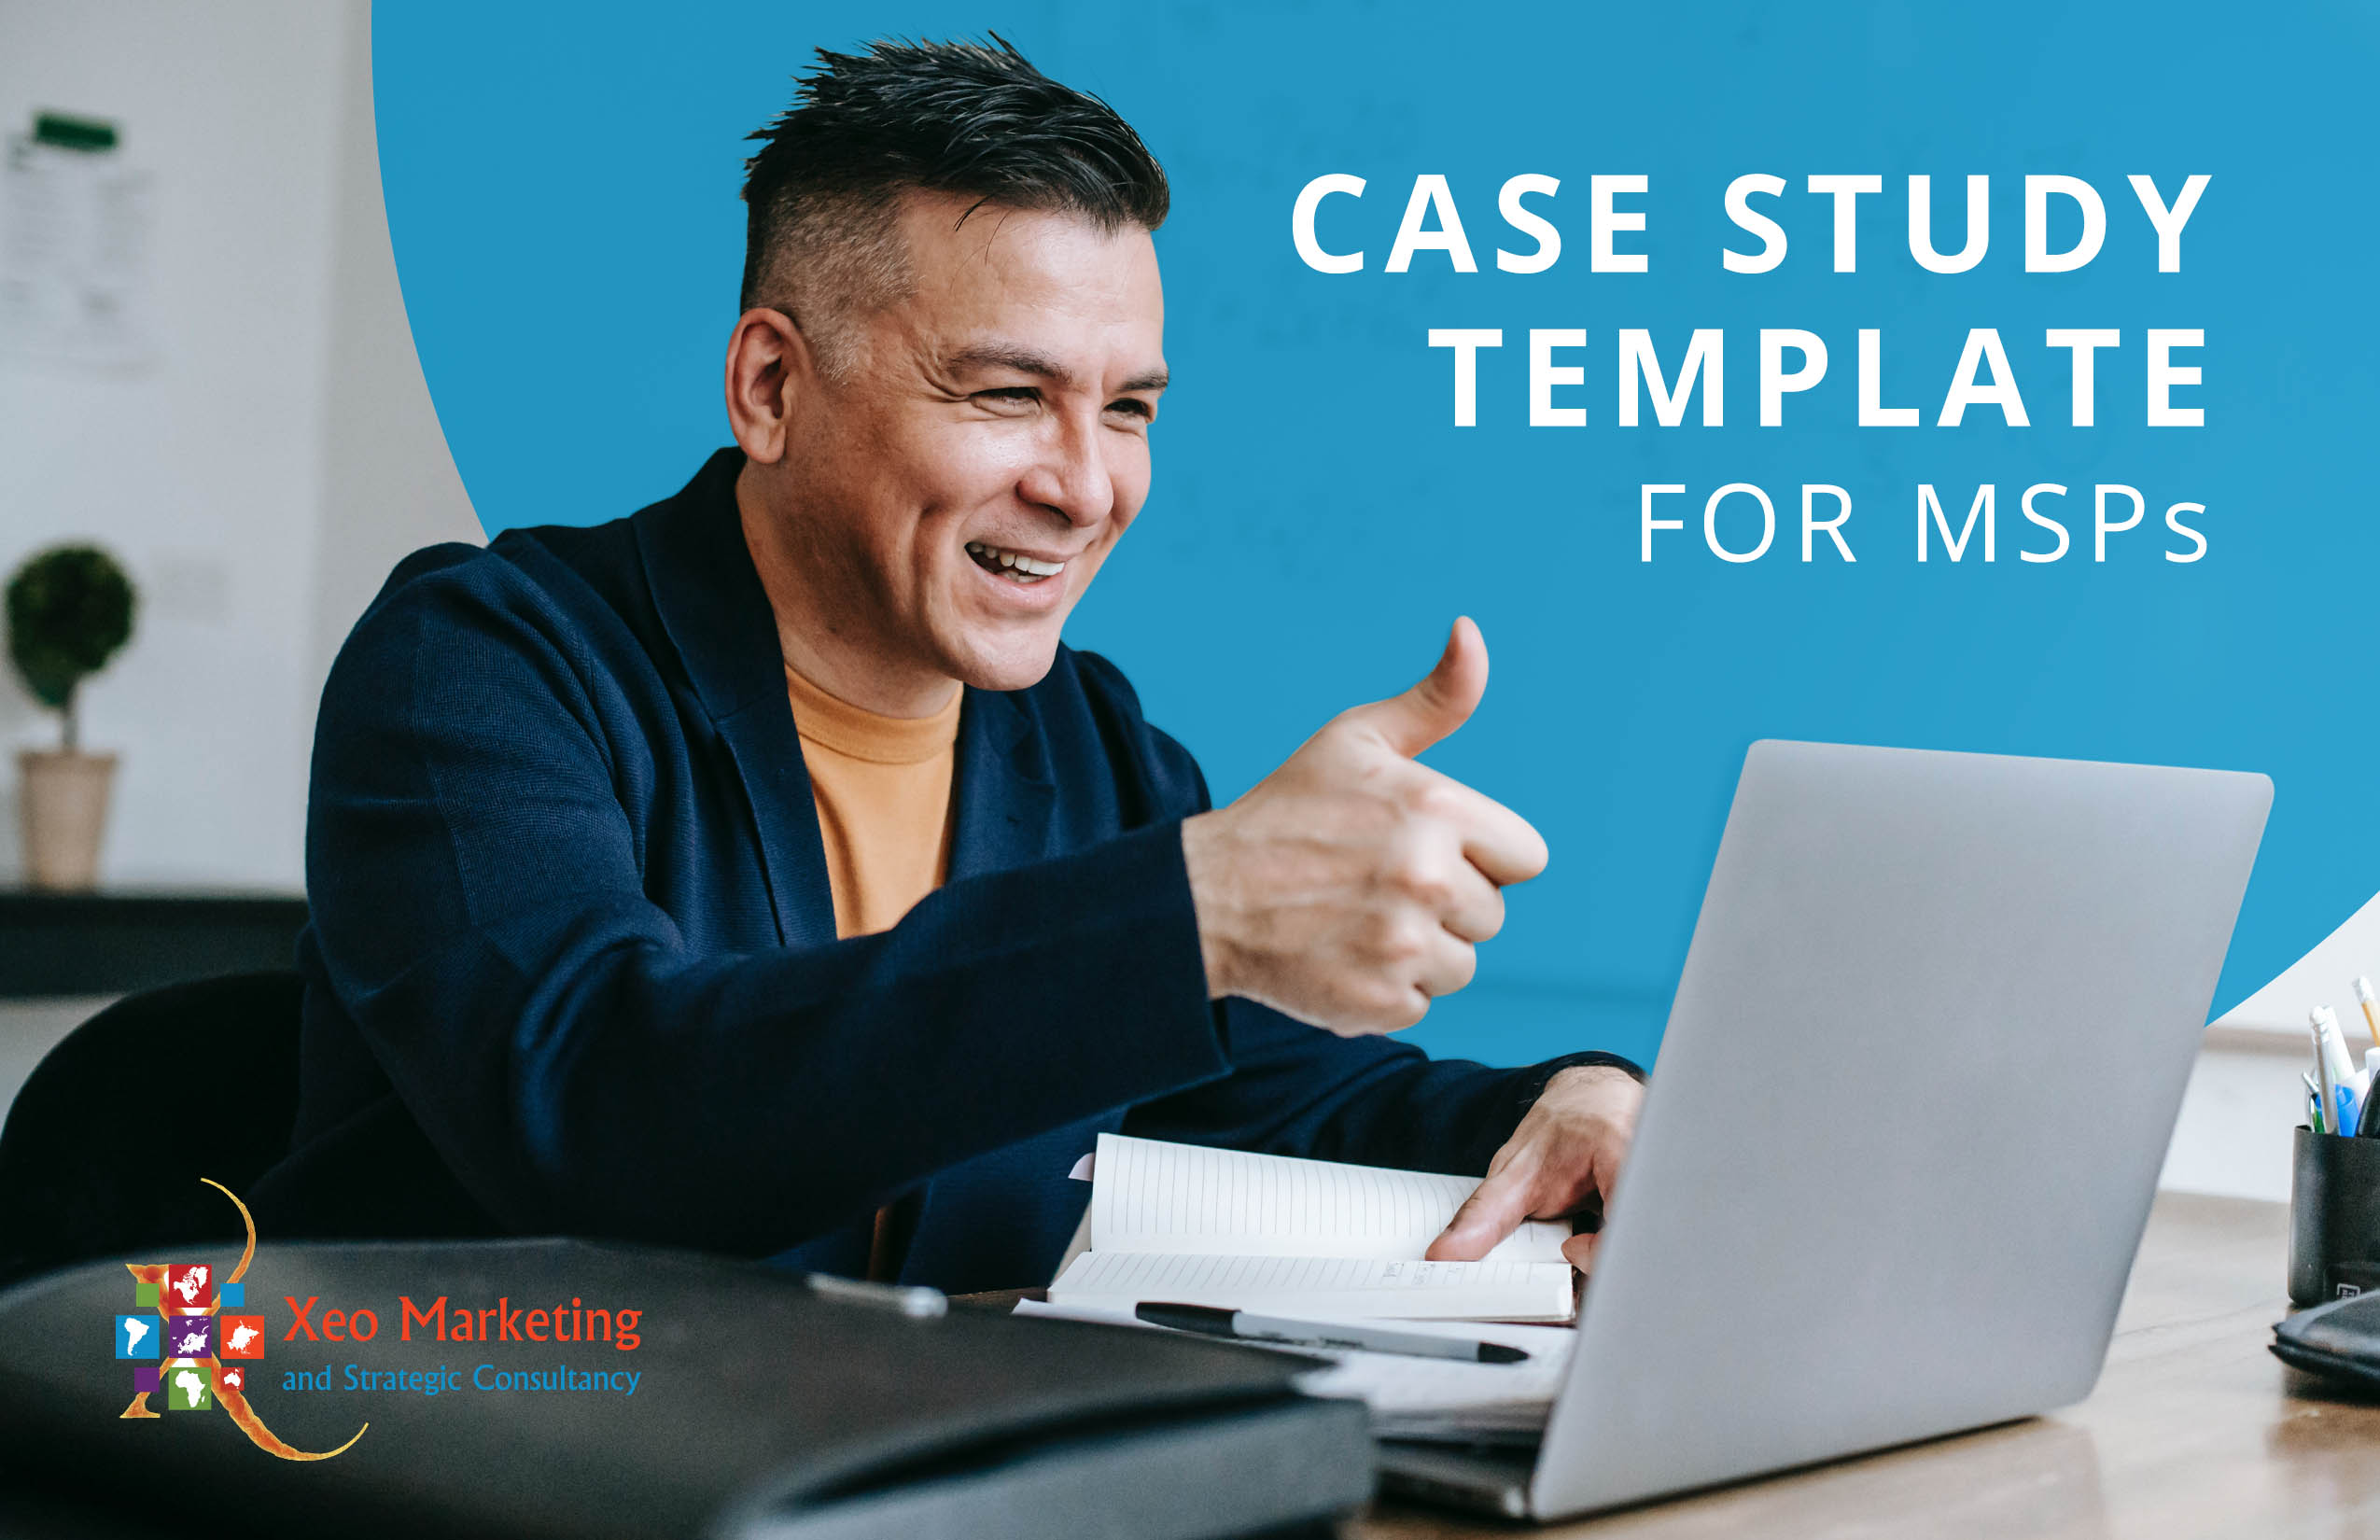 Case Study Template for MSPs